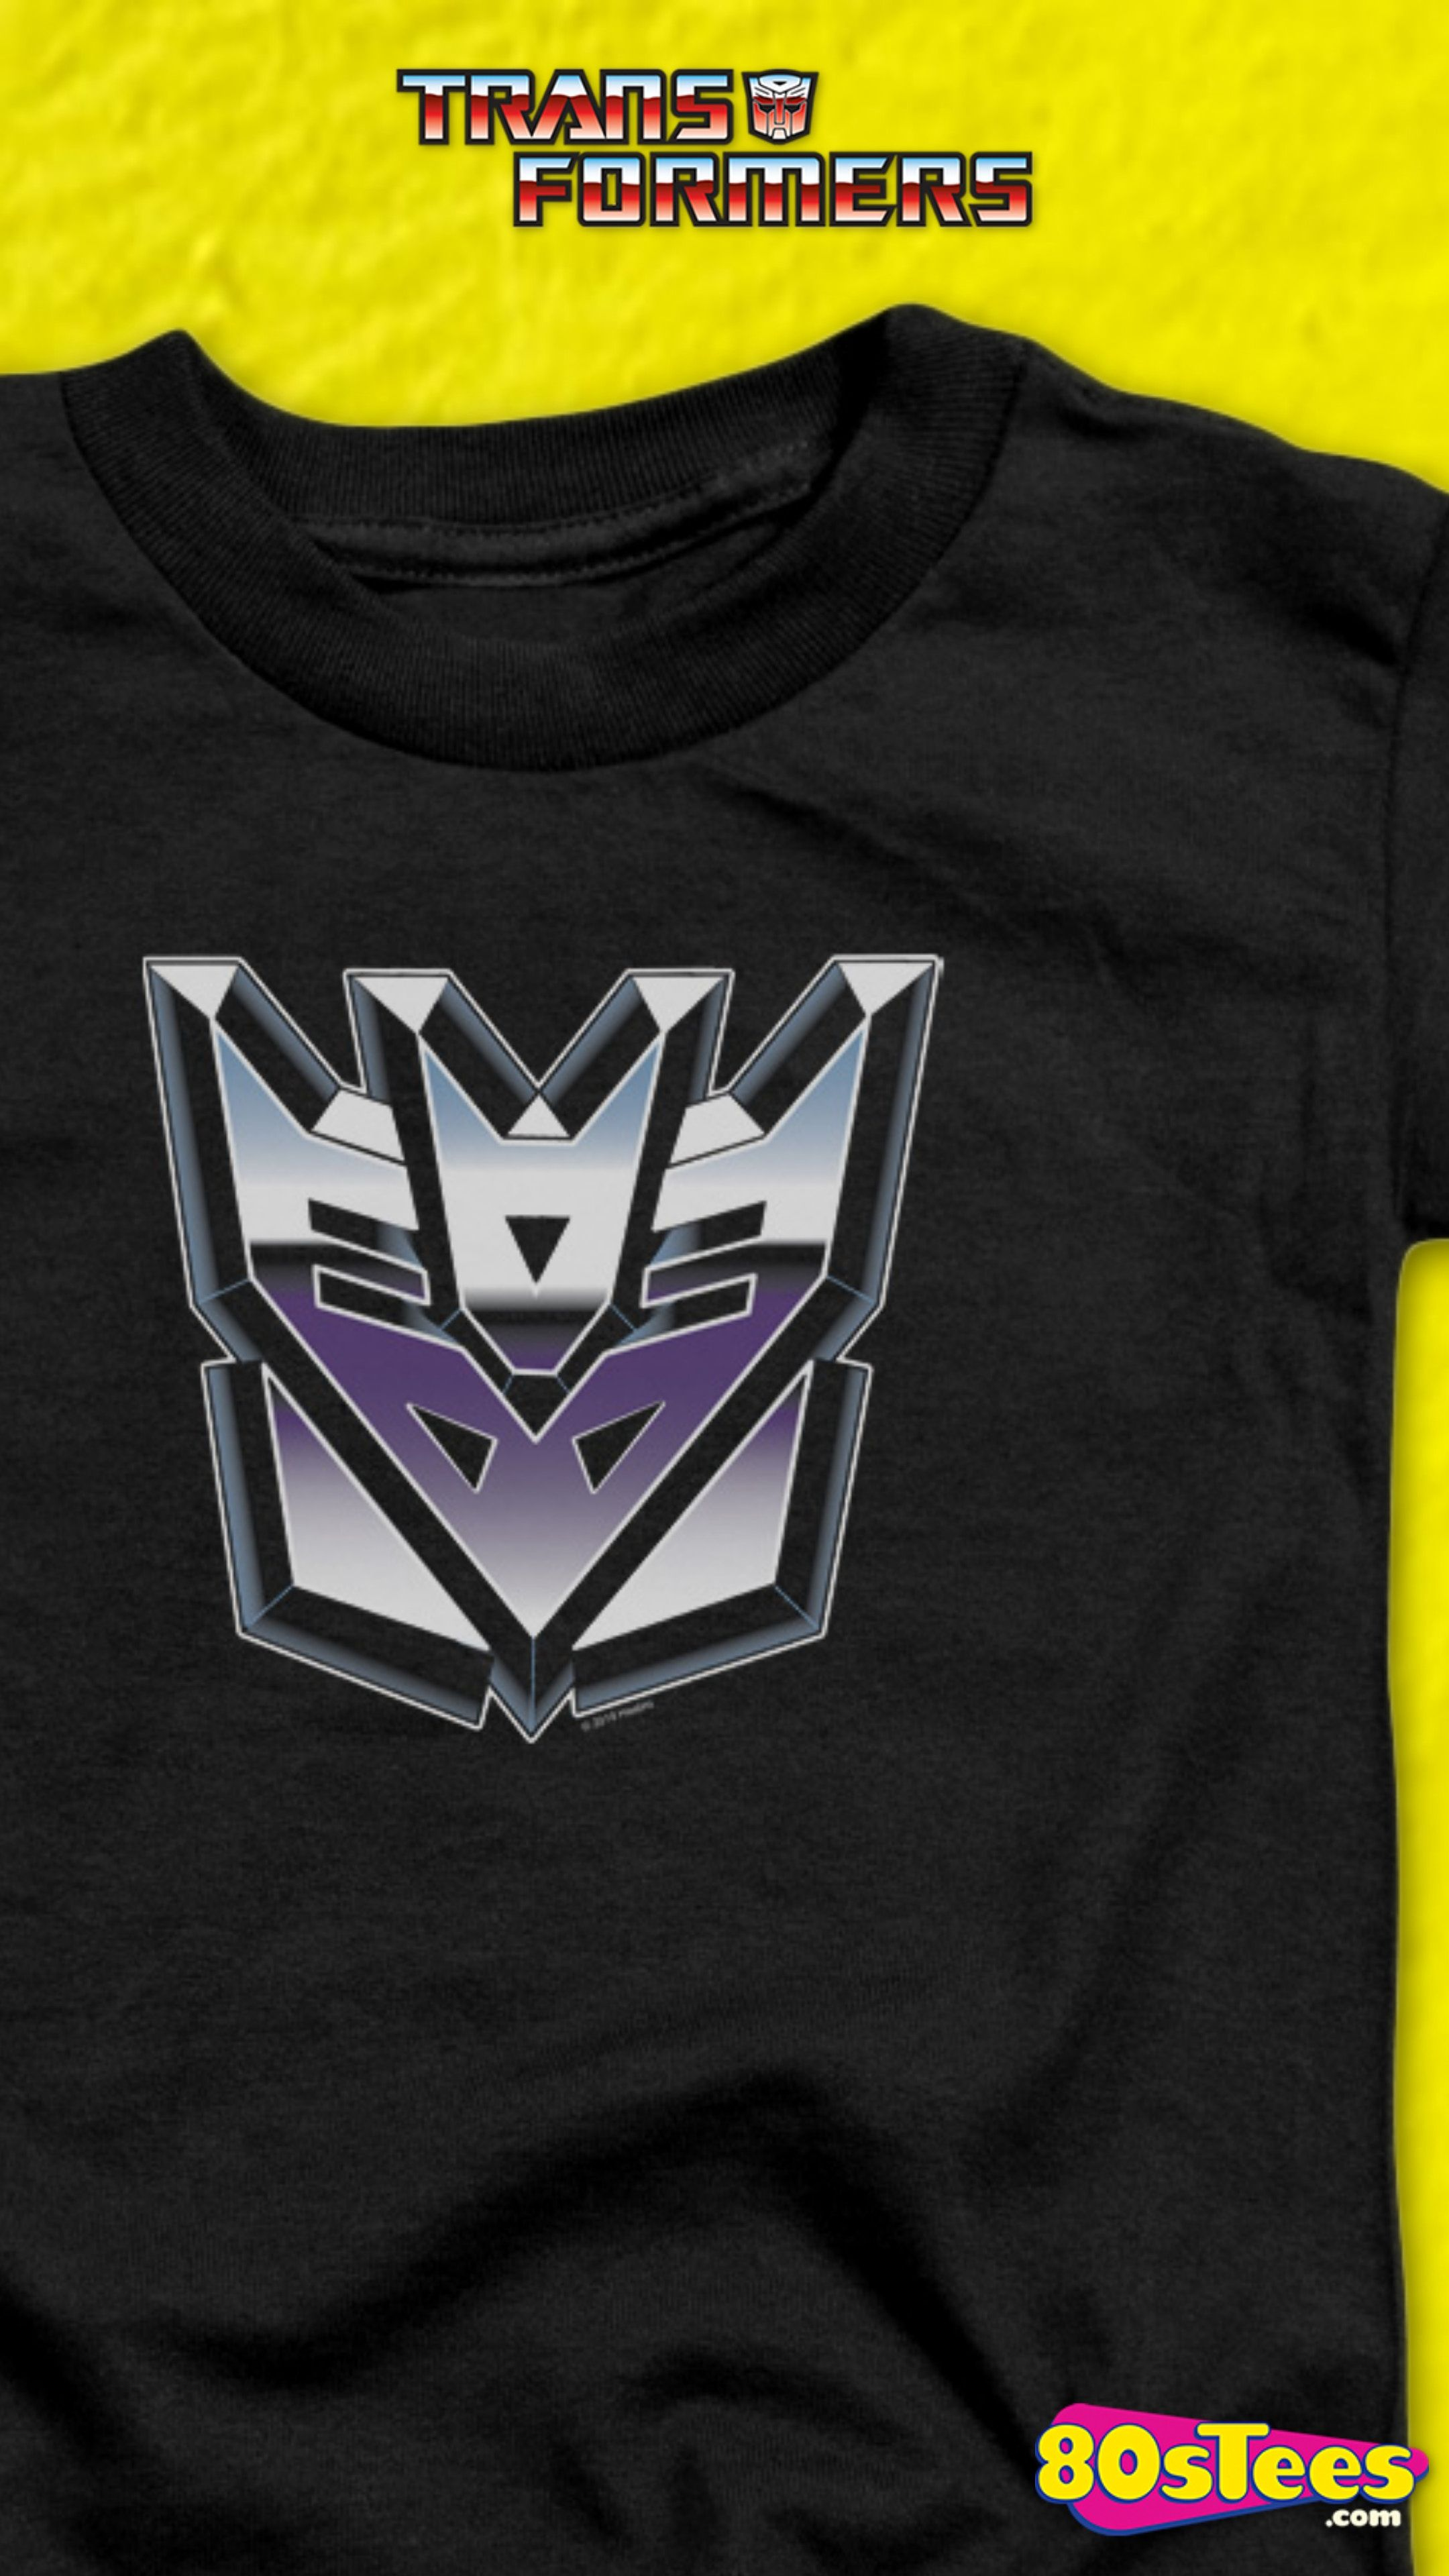 This Transformers T Shirt Shows An Airbrushed Decepticons Logo